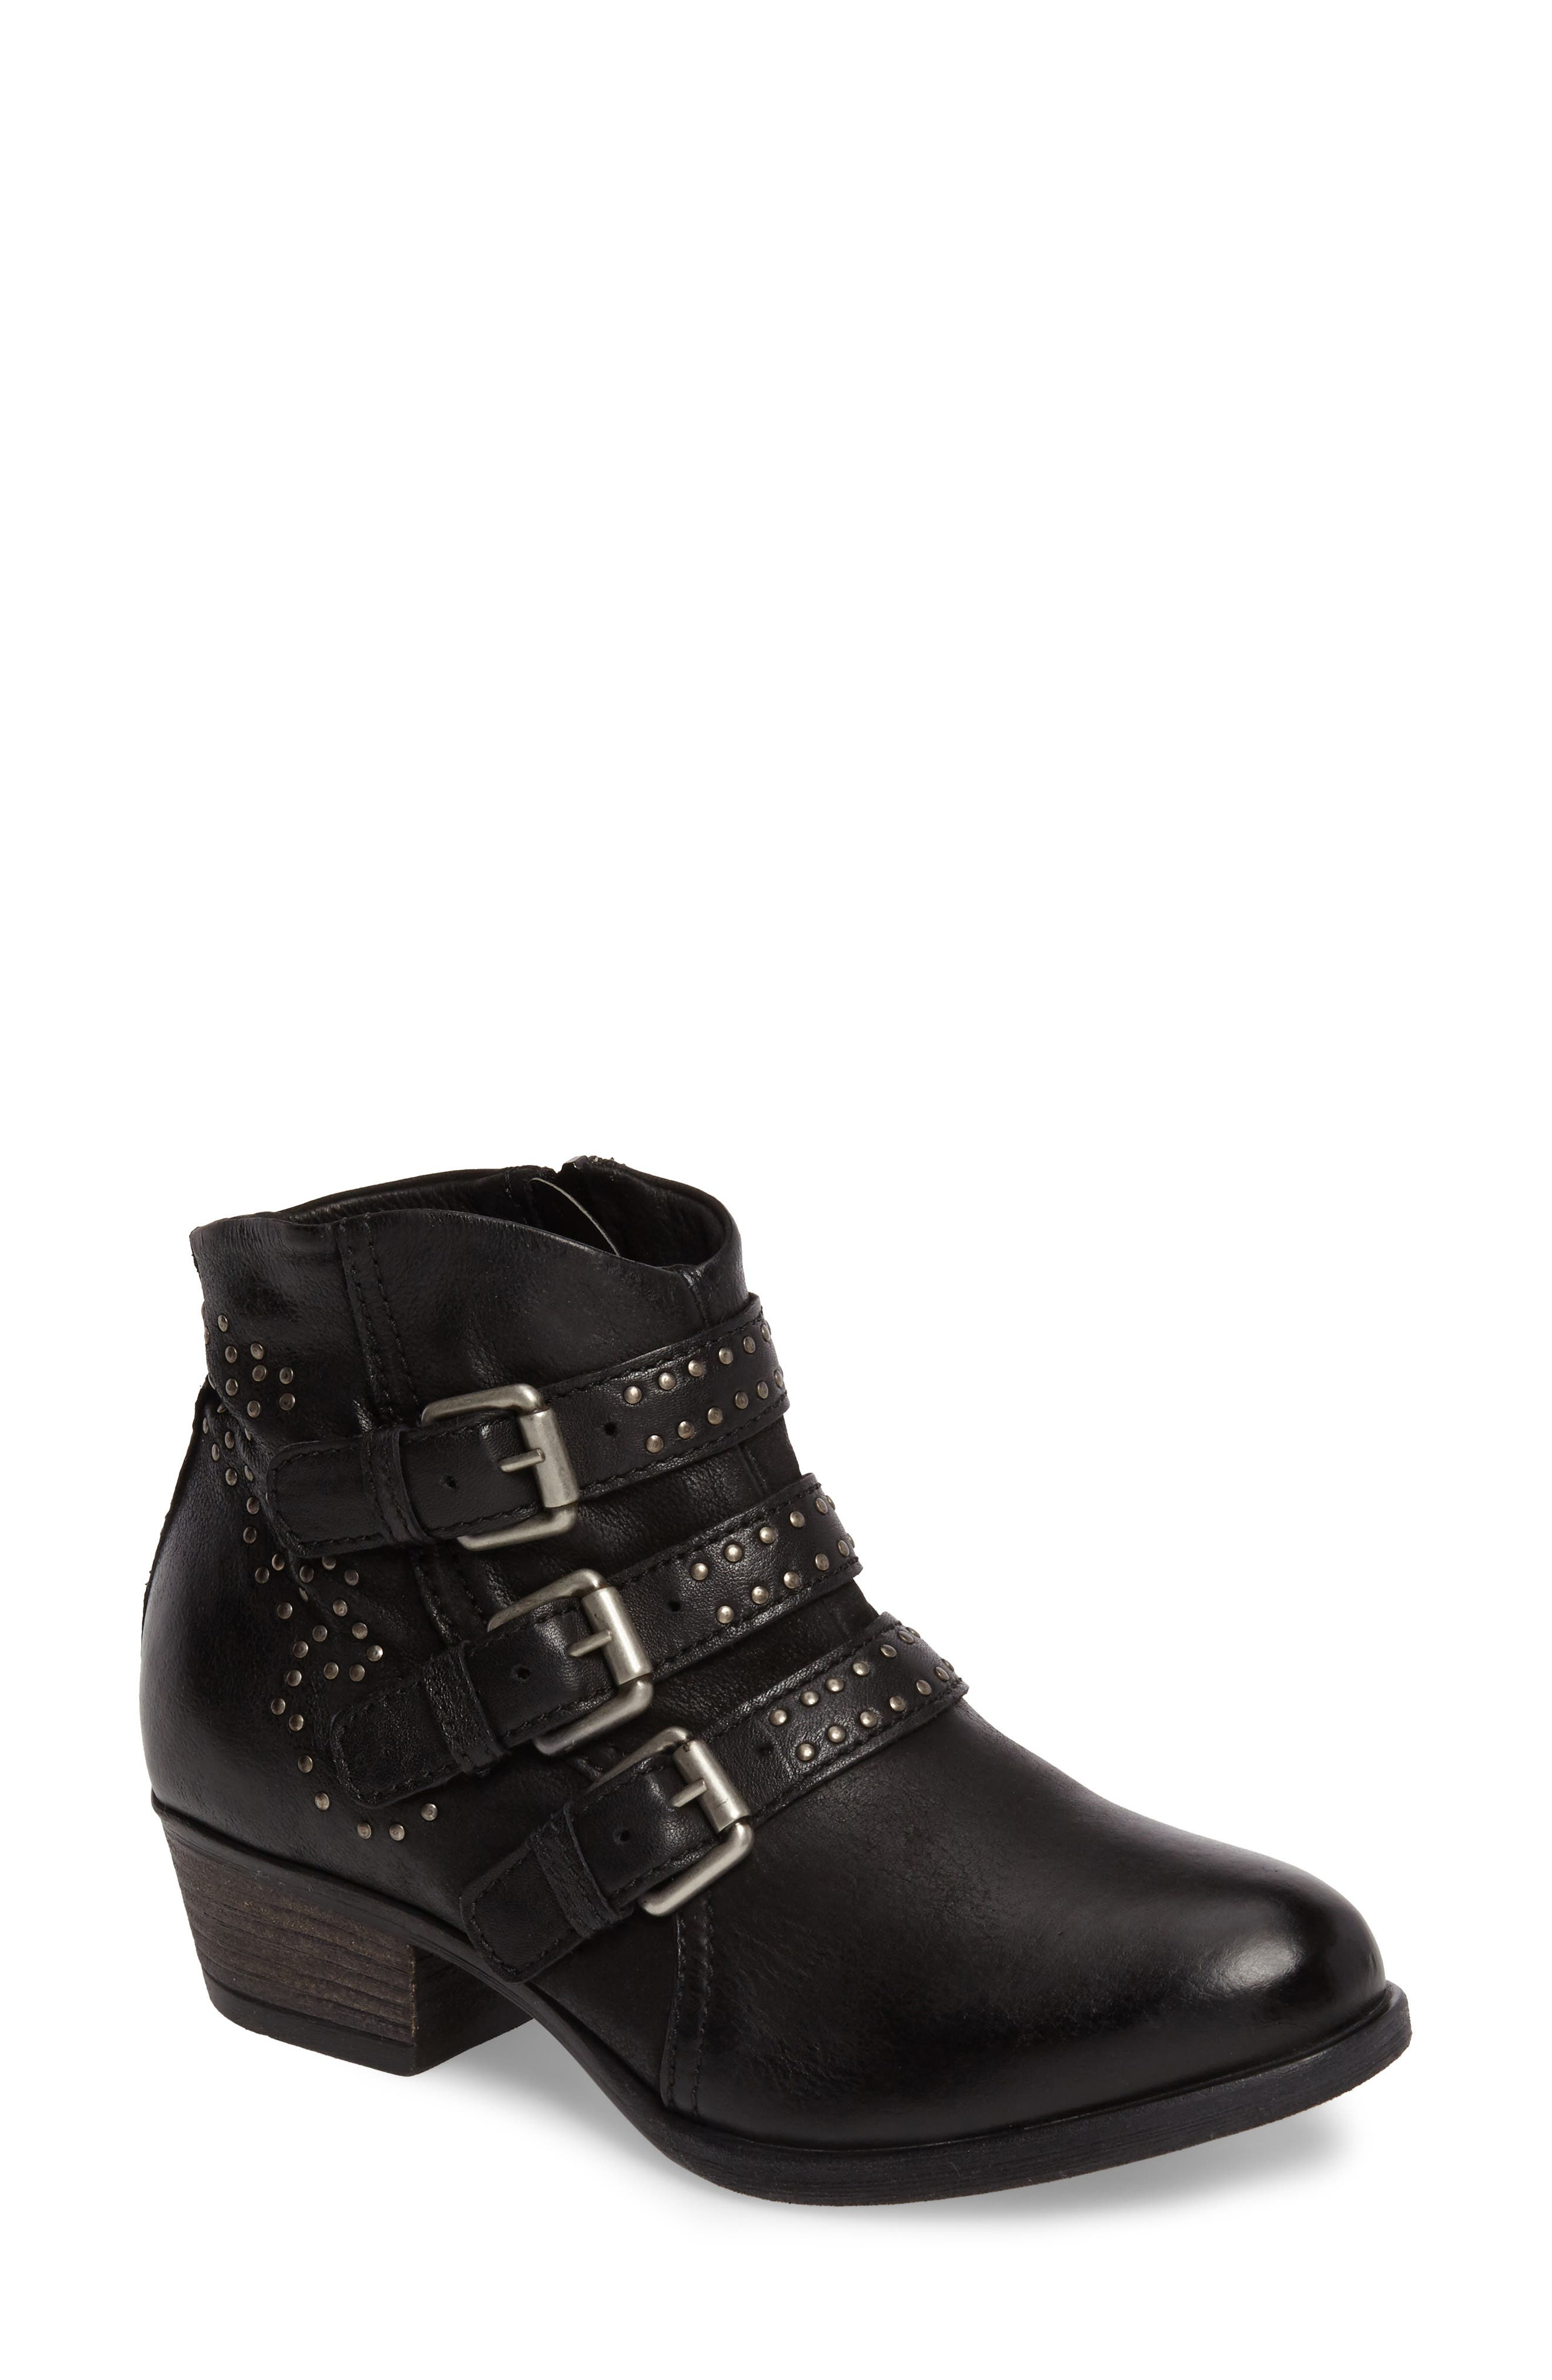 Barclay Studded Moto Bootie,                         Main,                         color, Black